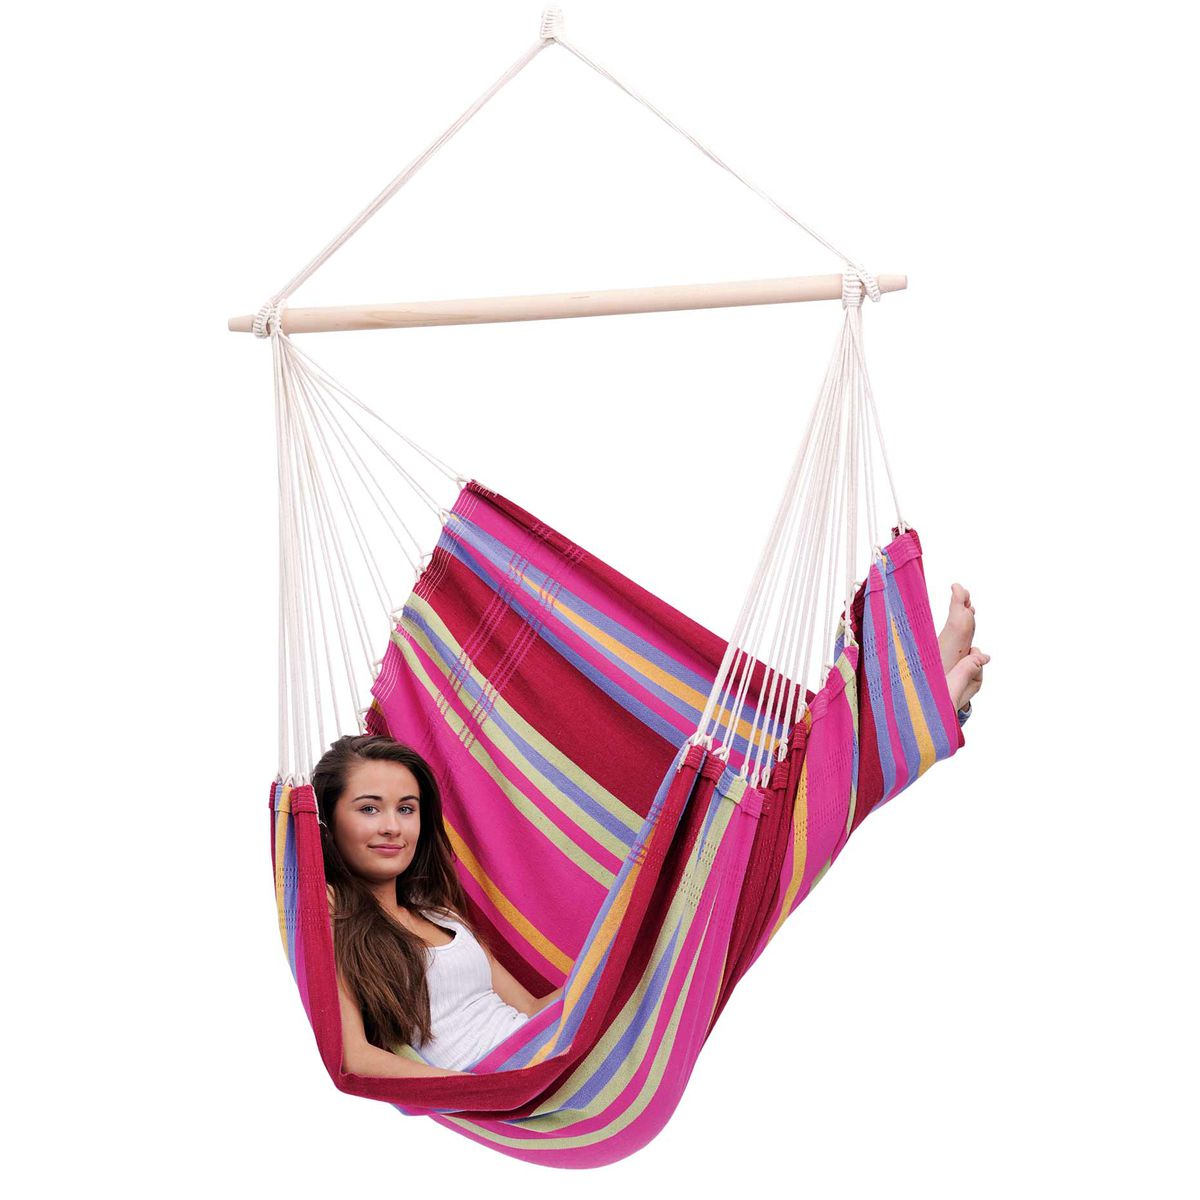 Amazonas Brasil Grenadine Hanging Chair - Ruby's Garden Boutique